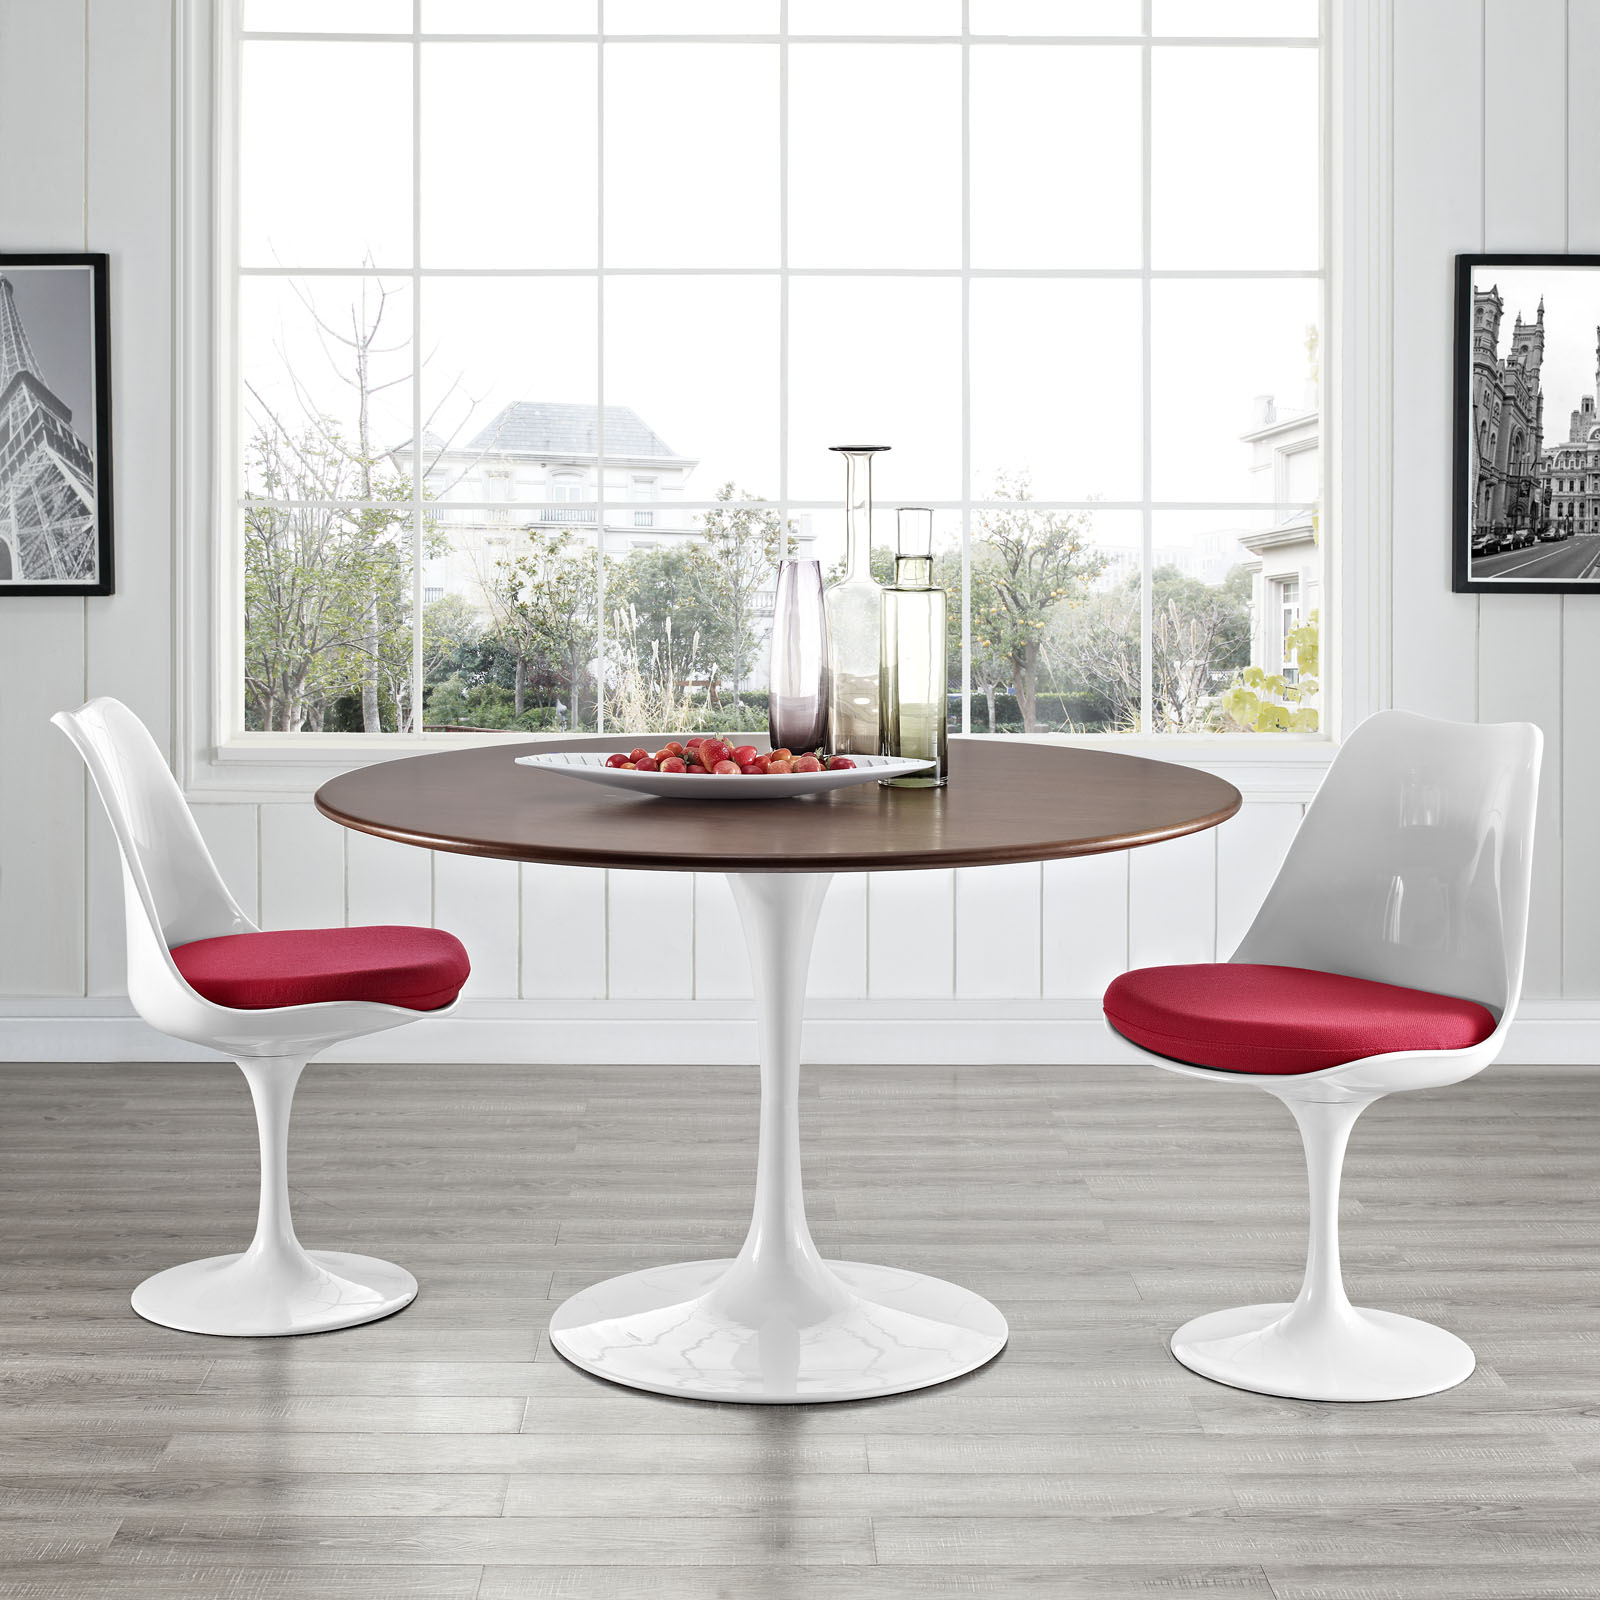 flower-dining-table-47-with-tulip-chairs.jpg